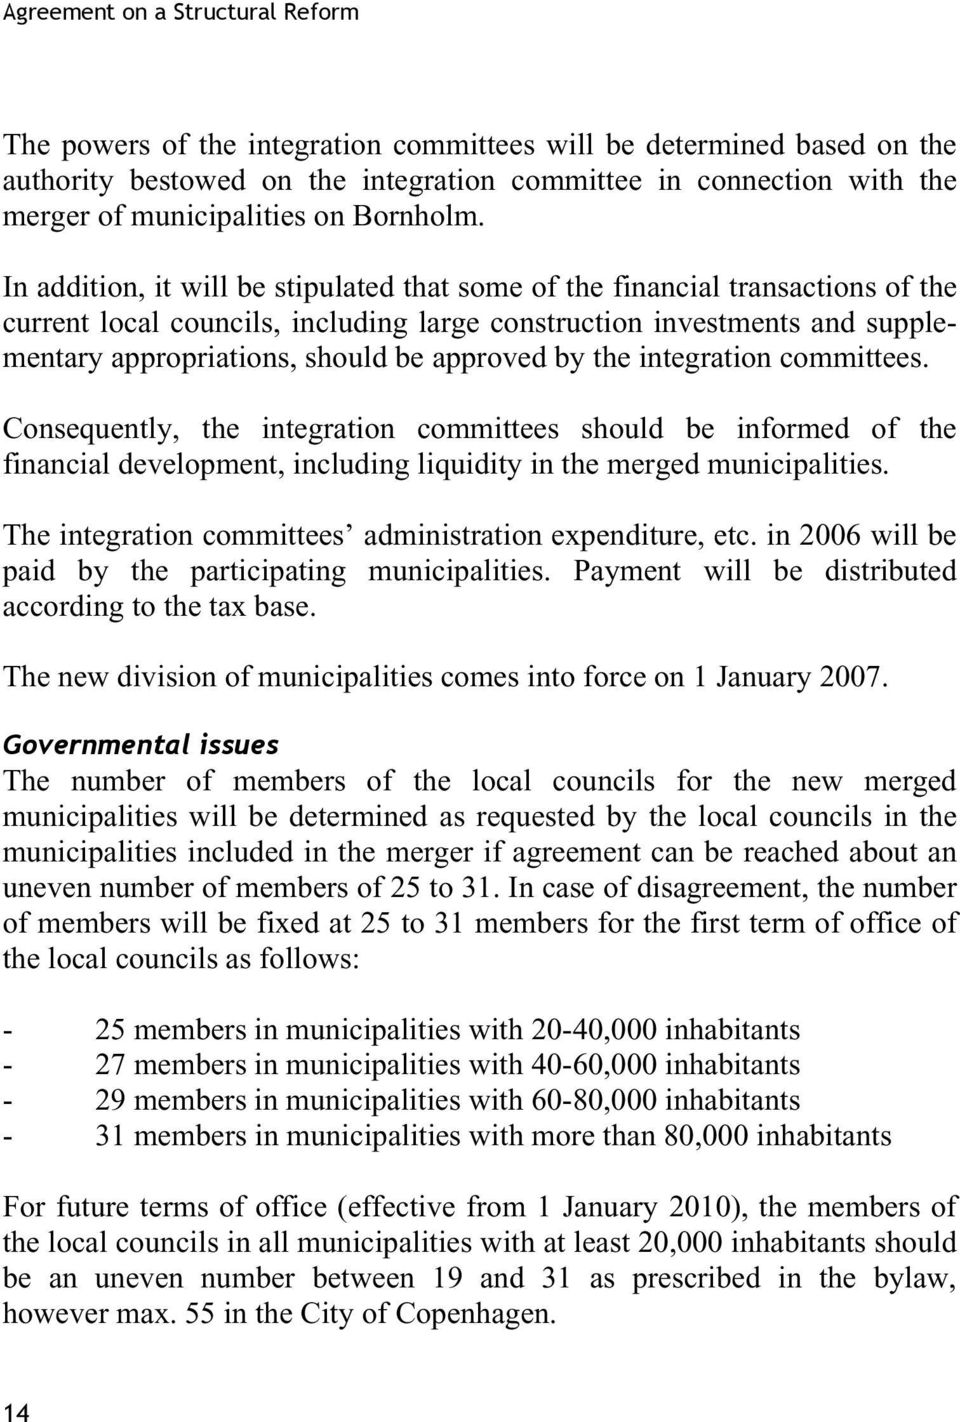 In addition, it will be stipulated that some of the financial transactions of the current local councils, including large construction investments and supplementary appropriations, should be approved